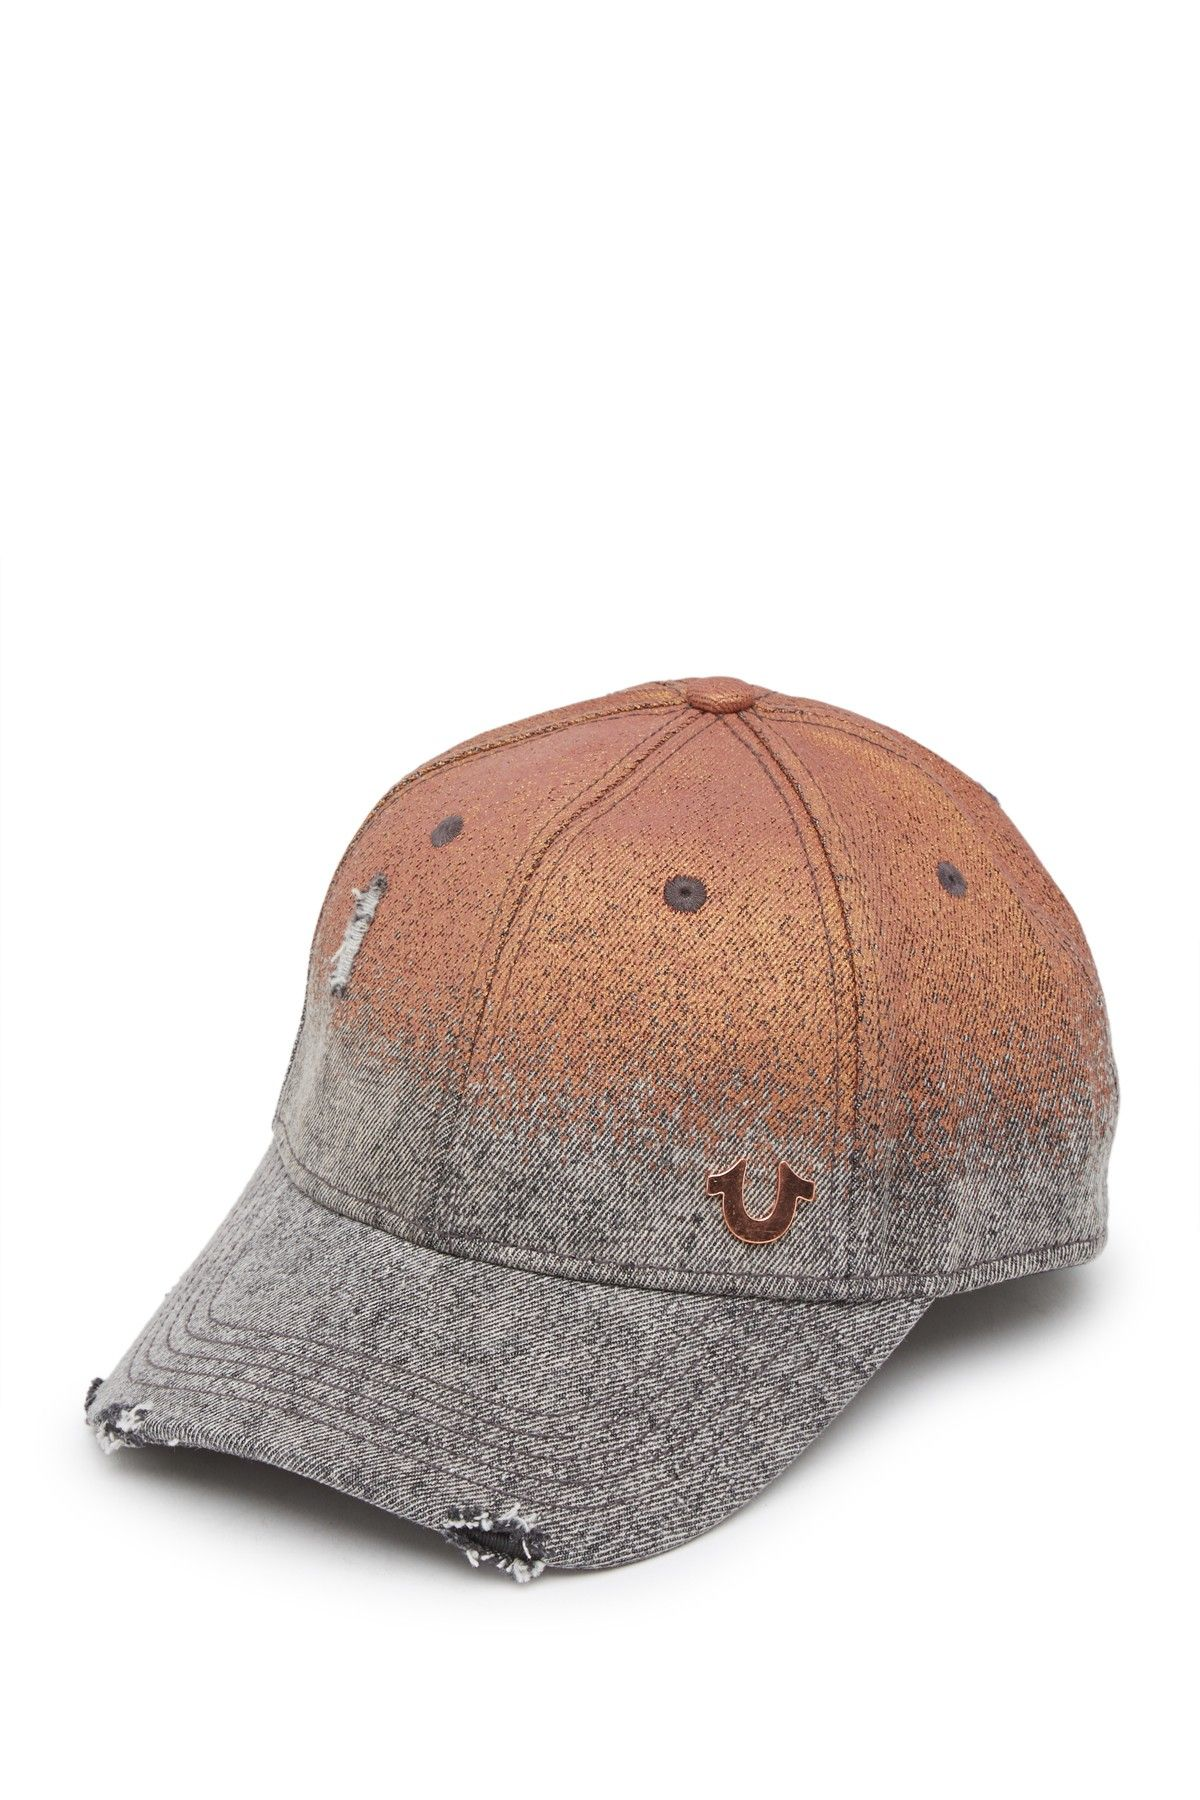 117d7029 True Religion - Rusty Metallic Baseball Cap is now 54% off. Free Shipping  on orders over $100.